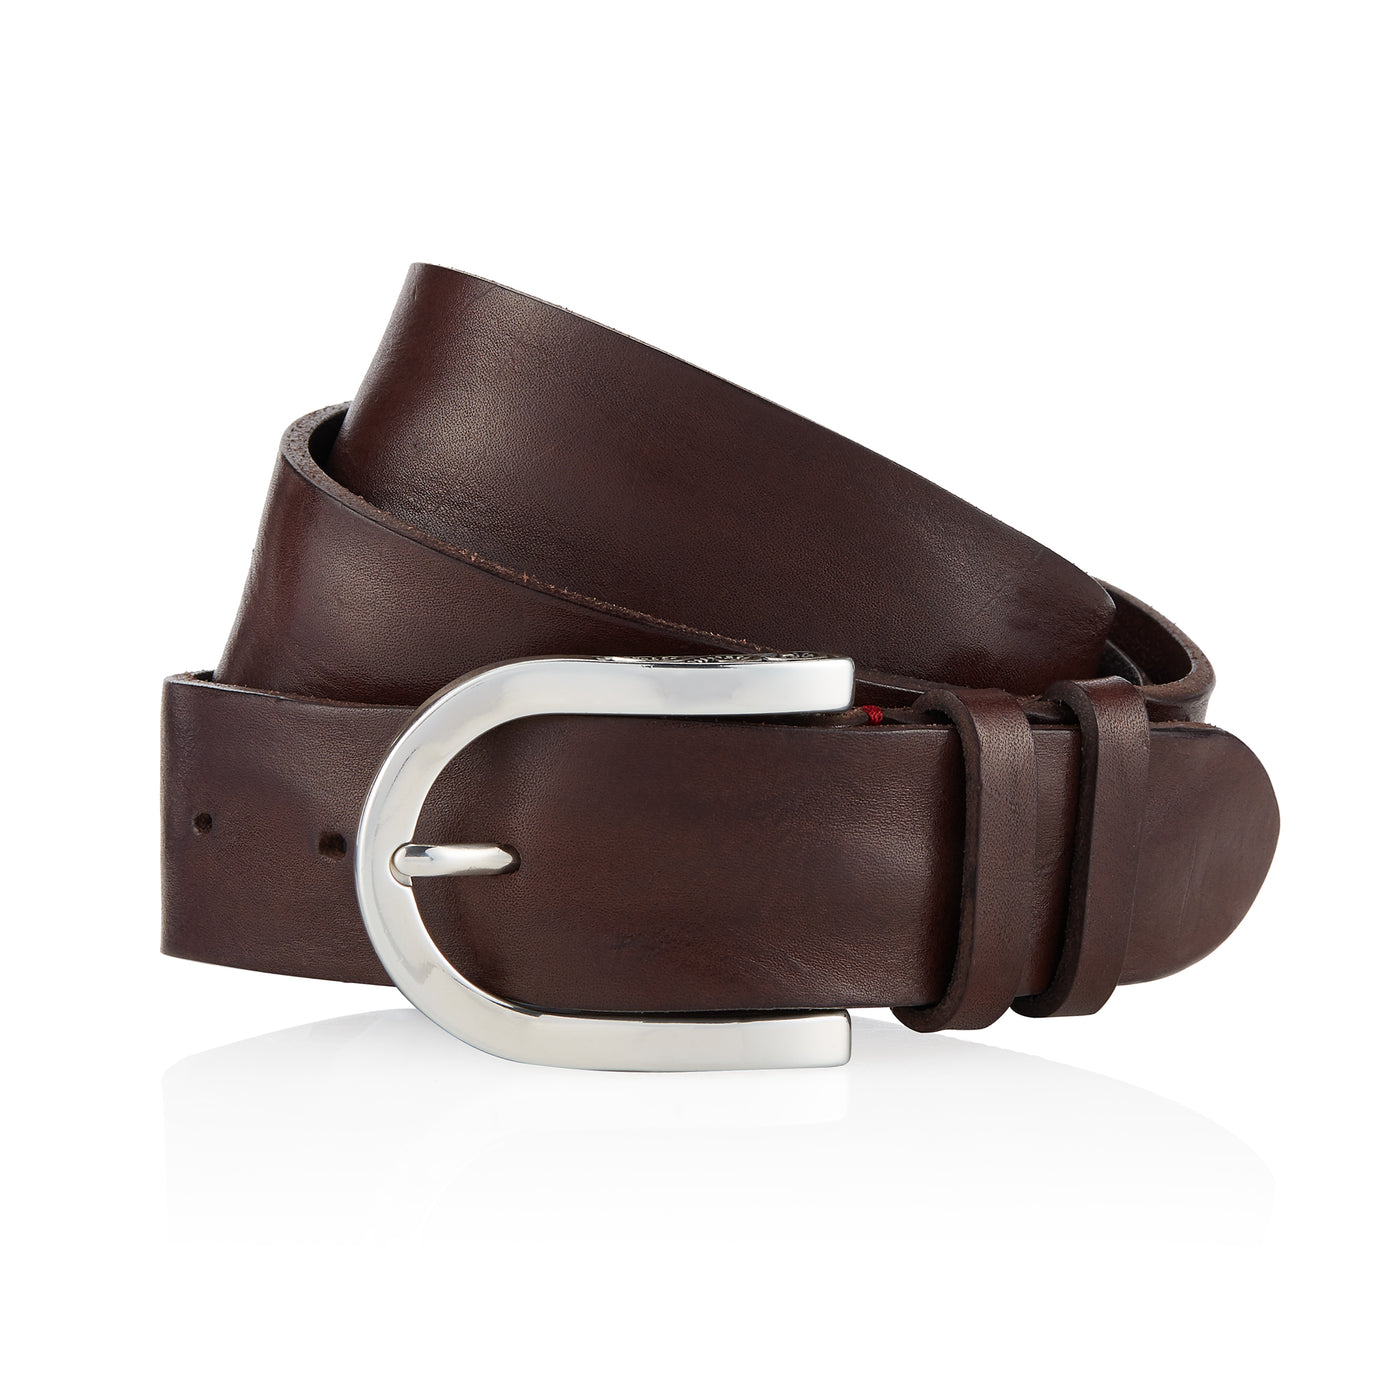 Afar - Handcrafted Italian Belt / Dark Brown